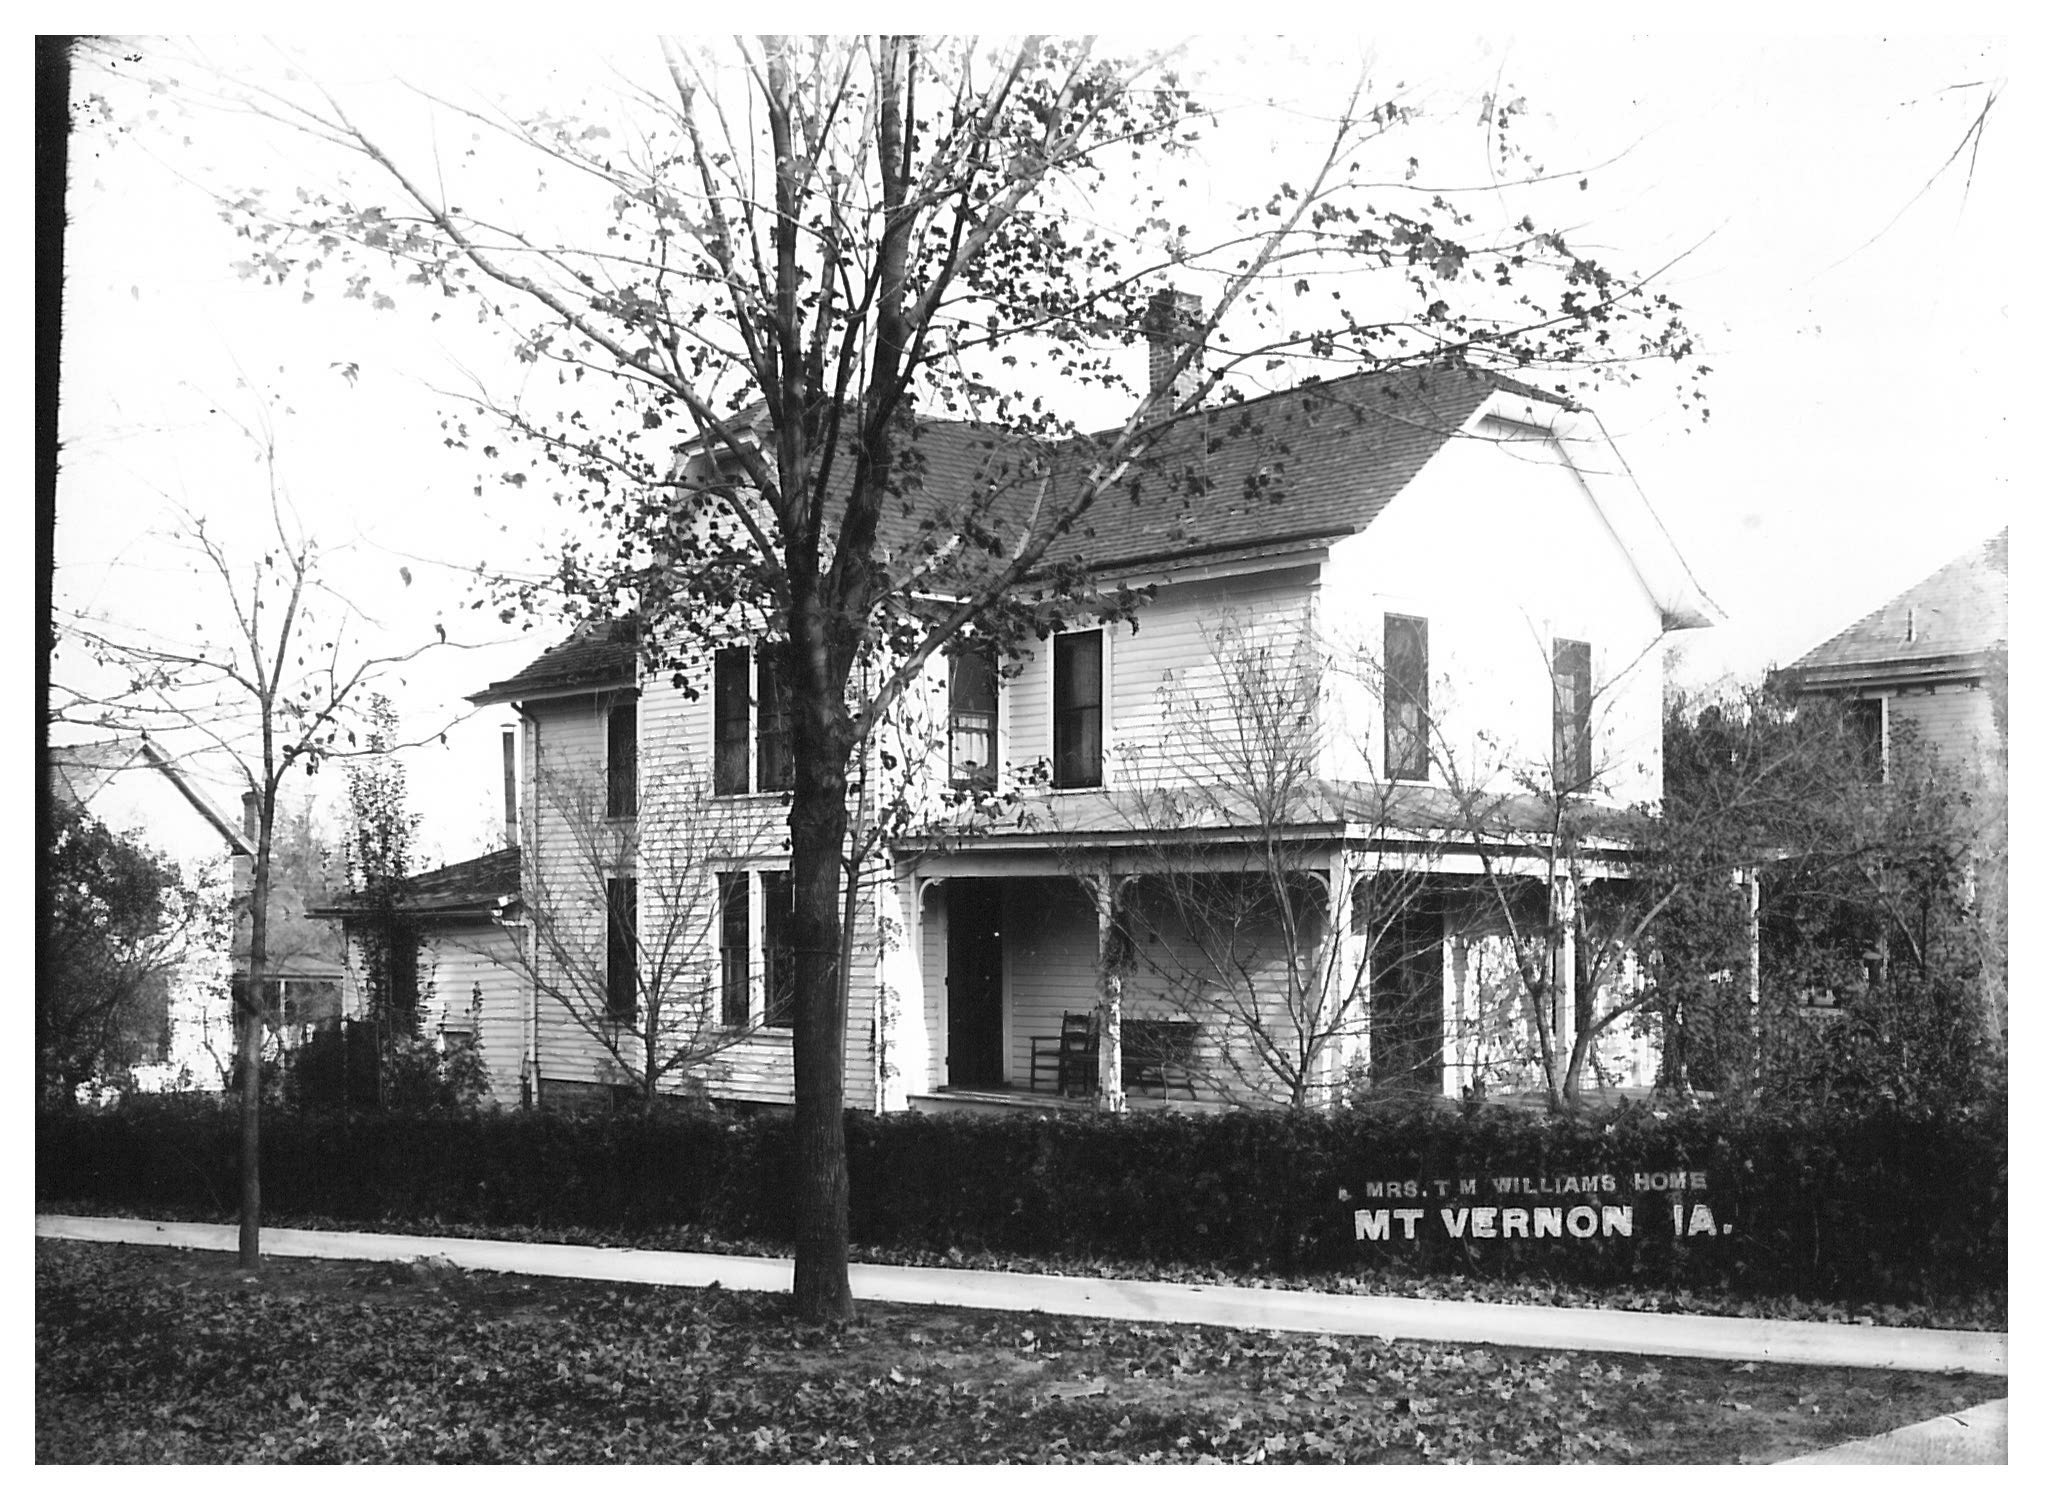 photo of Mrs. T. M. Williams Home